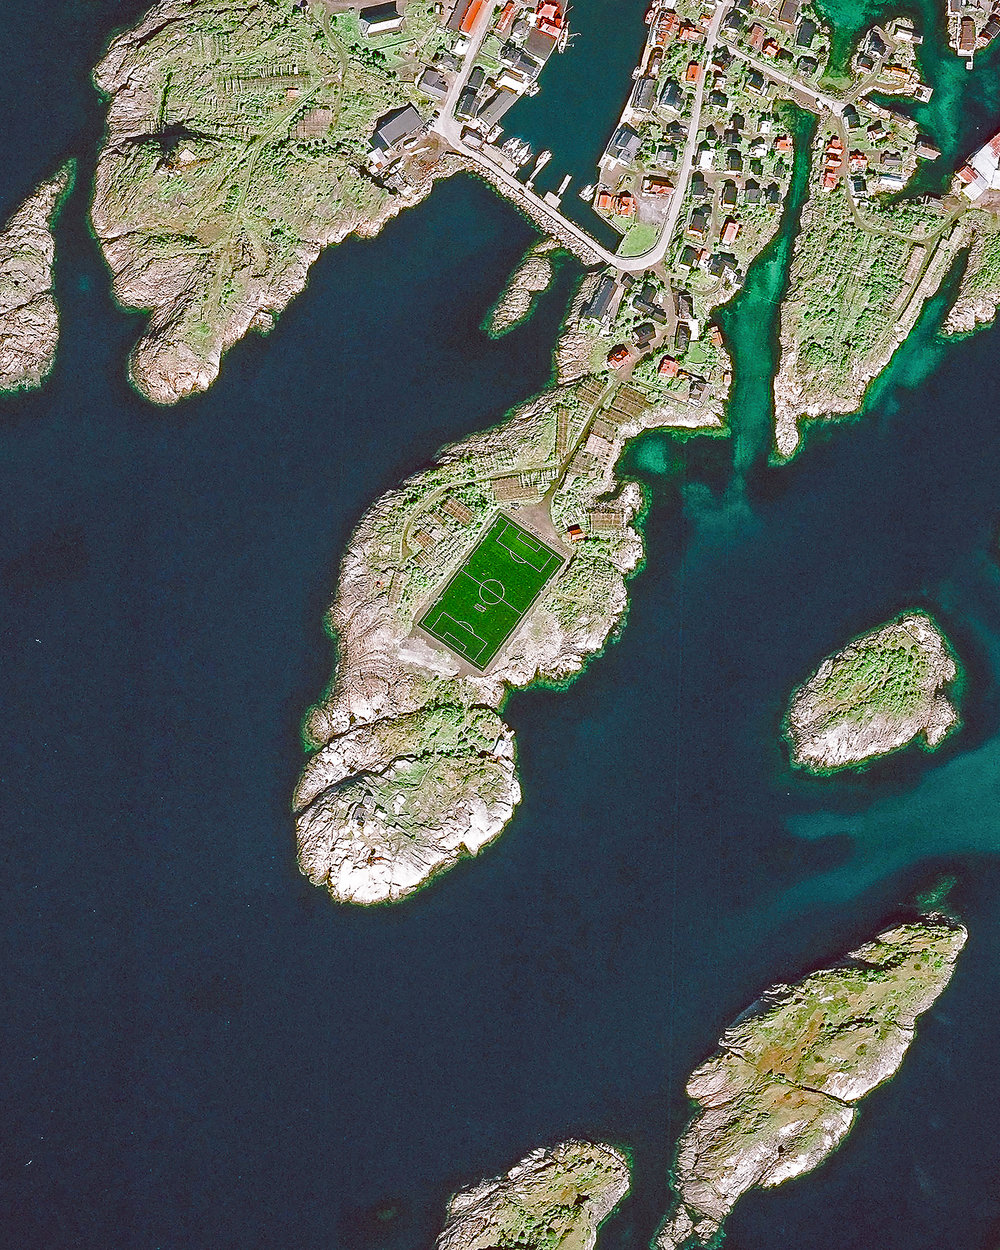 "Check out this unique soccer pitch in Henningsvær, a fishing village located on several small islands in Norway's Lofoten archipelago. Situated inside the Arctic Circle, this 74-acre (0.3 sq. km) village has a population of less than 500 people. Henningsvær is a popular tourist destination, attracting hikers, climbers, divers and snorkelers.  68°08'57.1""N, 14°12'07.7""E  Source imagery: DigitalGlobe"